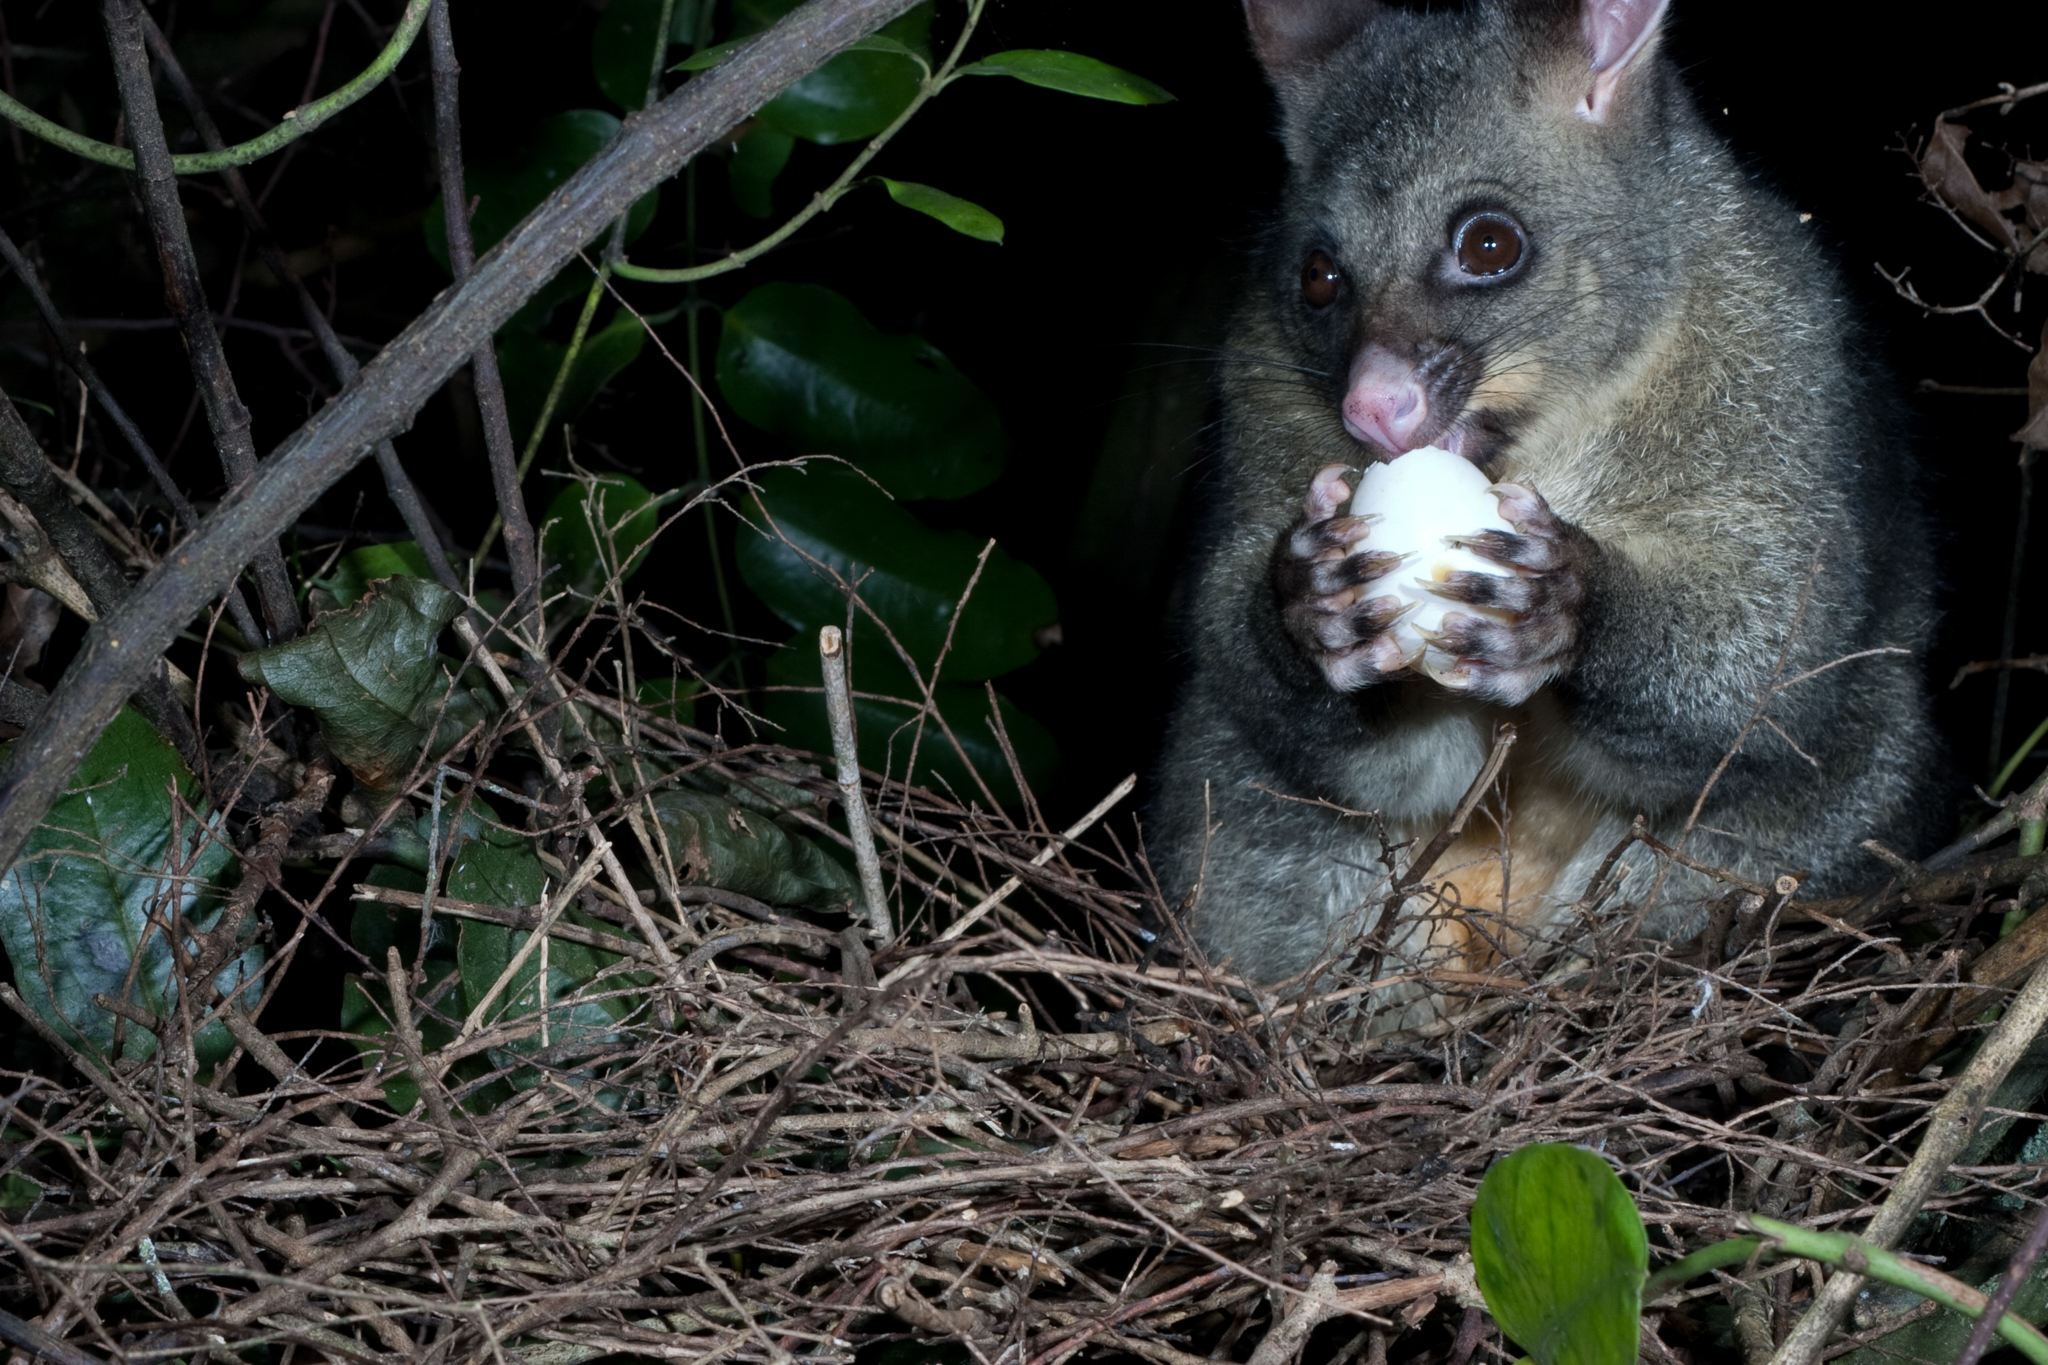 A brushtail possum (Trichosurus vulpecula) scavenges the egg of a native New Zealand pigeon (Hemiphaga novaeseelandiae) from its nest. In addition to direct predation, the possums also compete with the birds for the fruit on which they feed. Photograph copyright Nga Manu